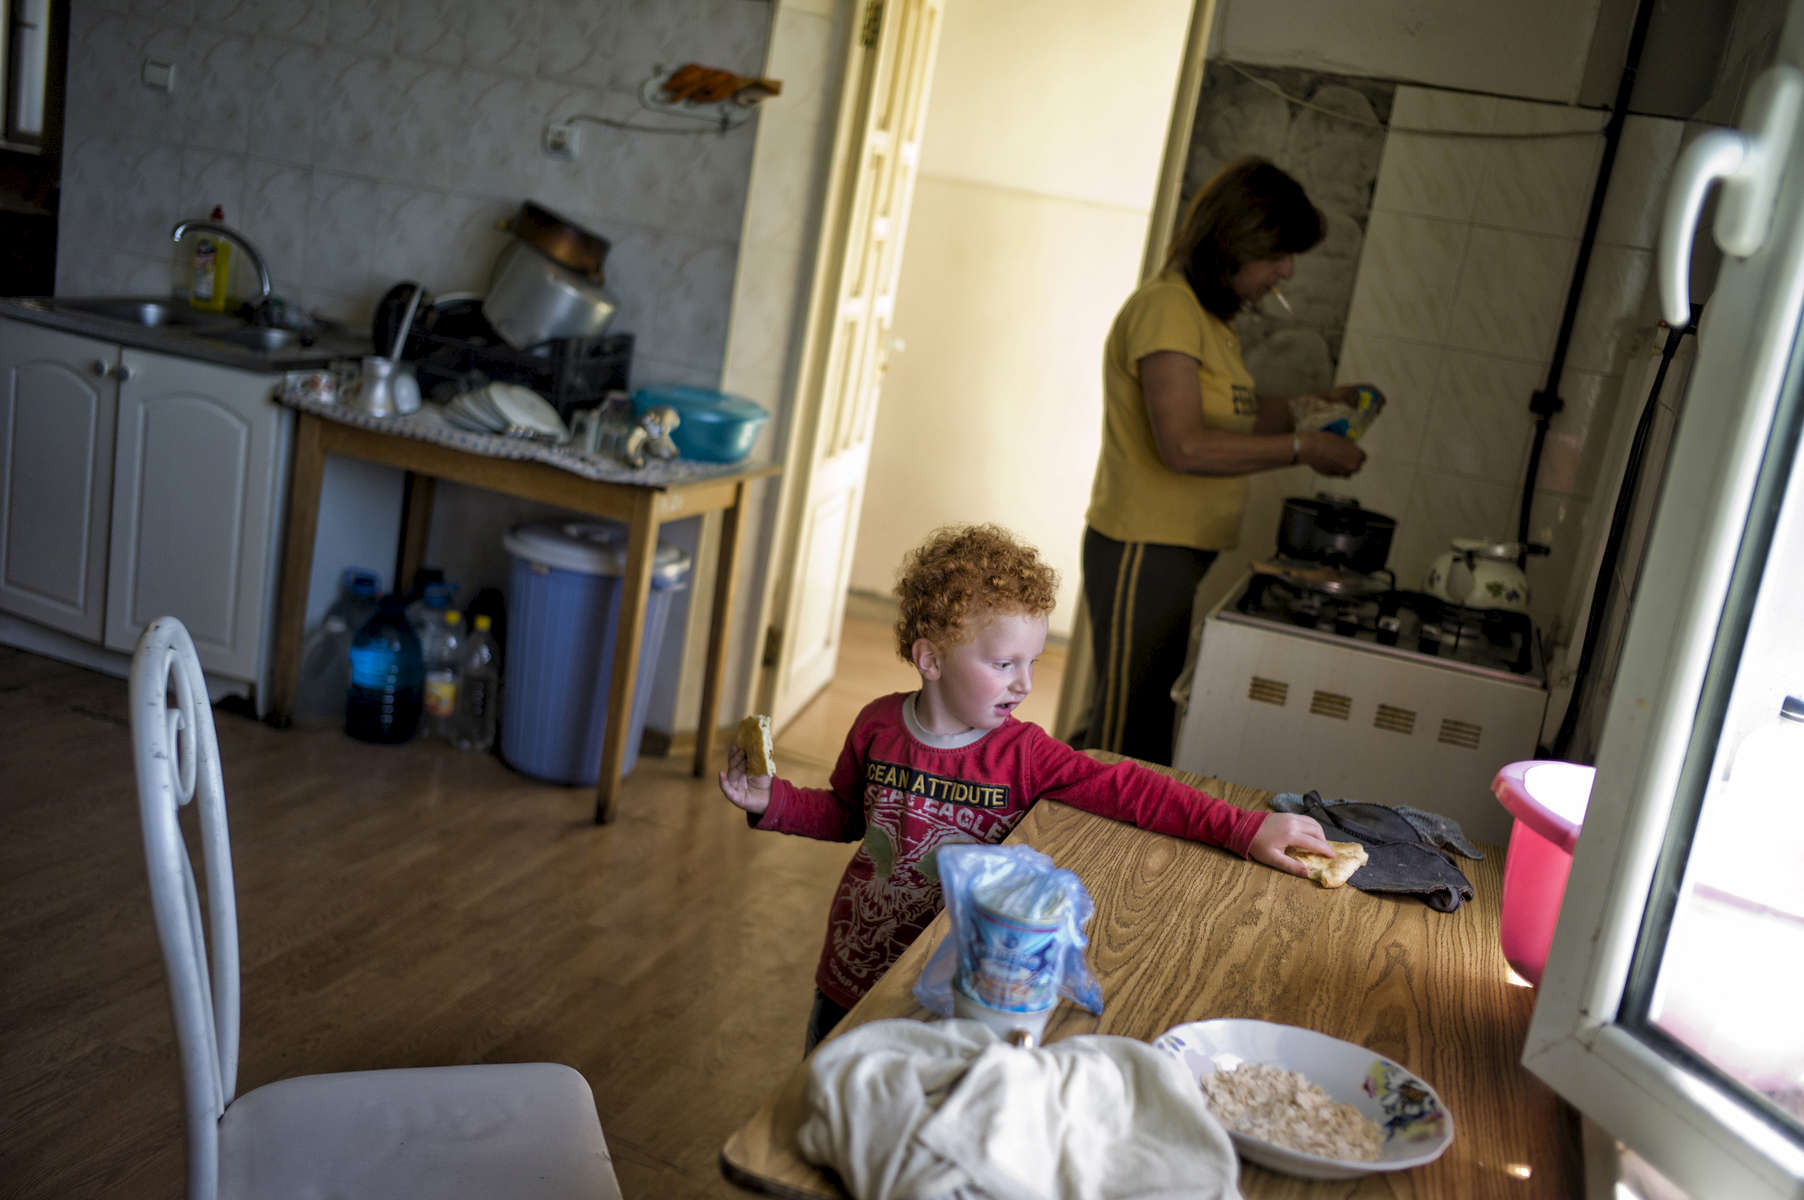 June 14, 2013: LACHIN/BERDZOR, NAGORNO-KARABAKH- Members of several different Syrian Armenian families stand in the kitchen of the guest house they are sharing in the unrecognized Caucasian republic of Nagorno-Karabakh.  Several hundred Syrian-Armenian refugees, mostly from Qamishlii, have moved to the contested republic, where they have been given housing and loans to help them to restart their lives, although most are still struggling - the house they share lacks electricity and work is extremely difficult to come by.   Most families have put their money into farming, but a freak hail storm damaged or destroyed most of this year's crop.  Nagorno-Karabakh, which in the Soviet Union was under the control of Azerbaijan, has been a de facto independent state since the 1988-94 Karabakh War in which its secessionist ethnic-Armenian population, backed by the Republic of Armenia, fought a war against the newly independent Azerbaijan, resulting in major population  shifts as Azeri residents of Karabakh fled to Azerbaijan and ethnic Armenians fled Azerbaijan for the Republic of Armenia.  While the war theoretically ended in 1994, hostilities occasionally flare up, and Karabakh's final status is far from settled, with Azerbaijan referring to it as occupied territory that it hopes to regain and Armenia controlling the only actual access to the republic. As a result, the movement of Syrian refugees into the territory, although voluntary on the part of the families rather than part of a state-run plan, has the potential to be extremely controversial.  Photo by Scout Tufankjian/Polaris